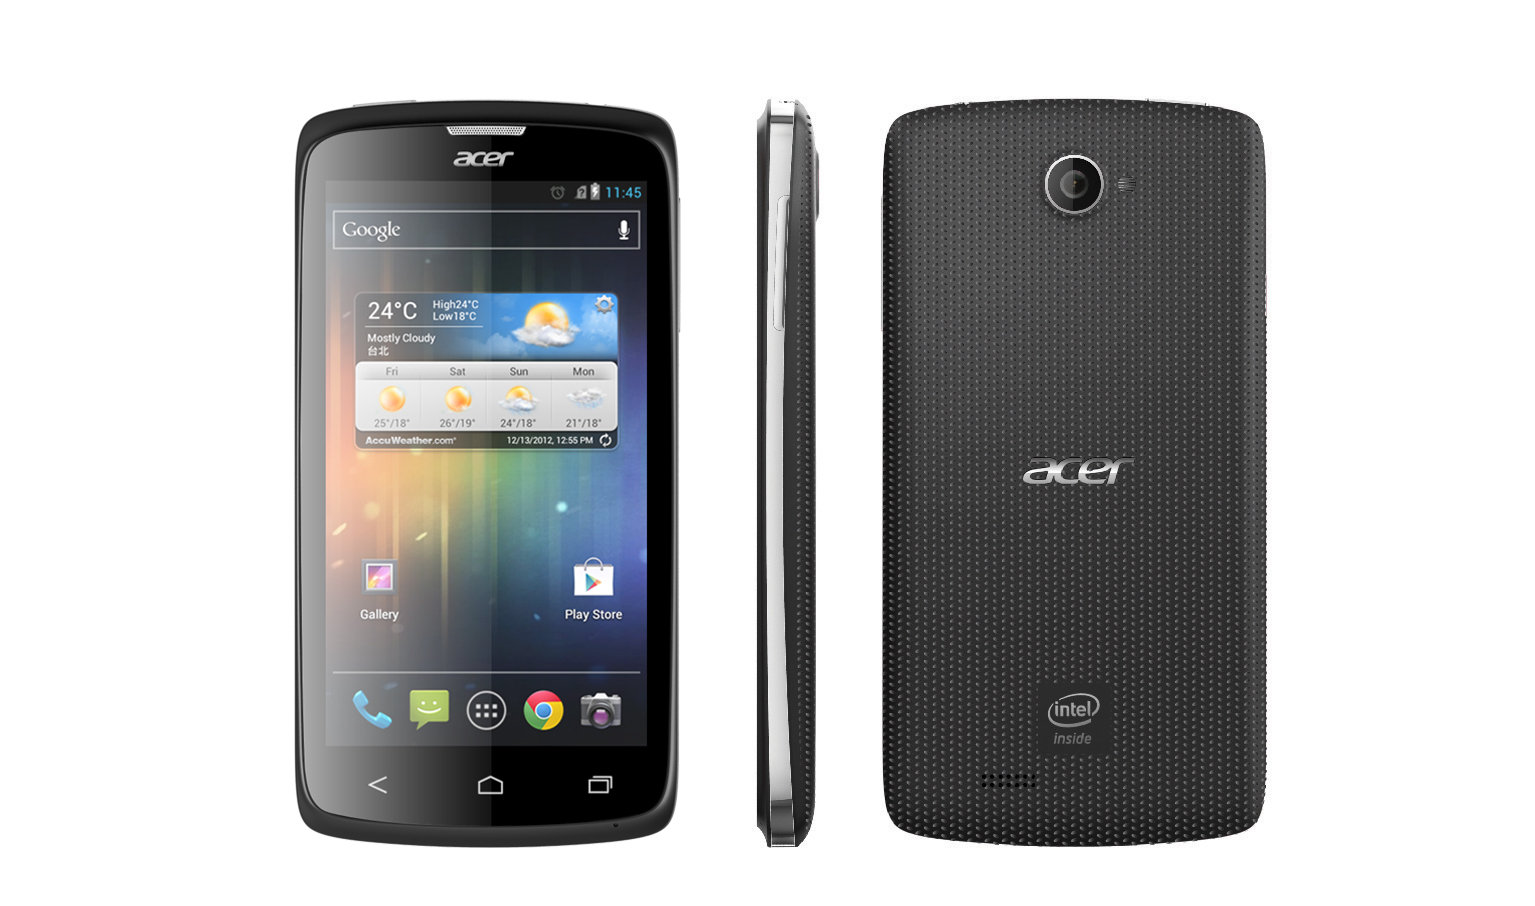 Acer Liquid C1 Smartphone with Intel Inside® - Black